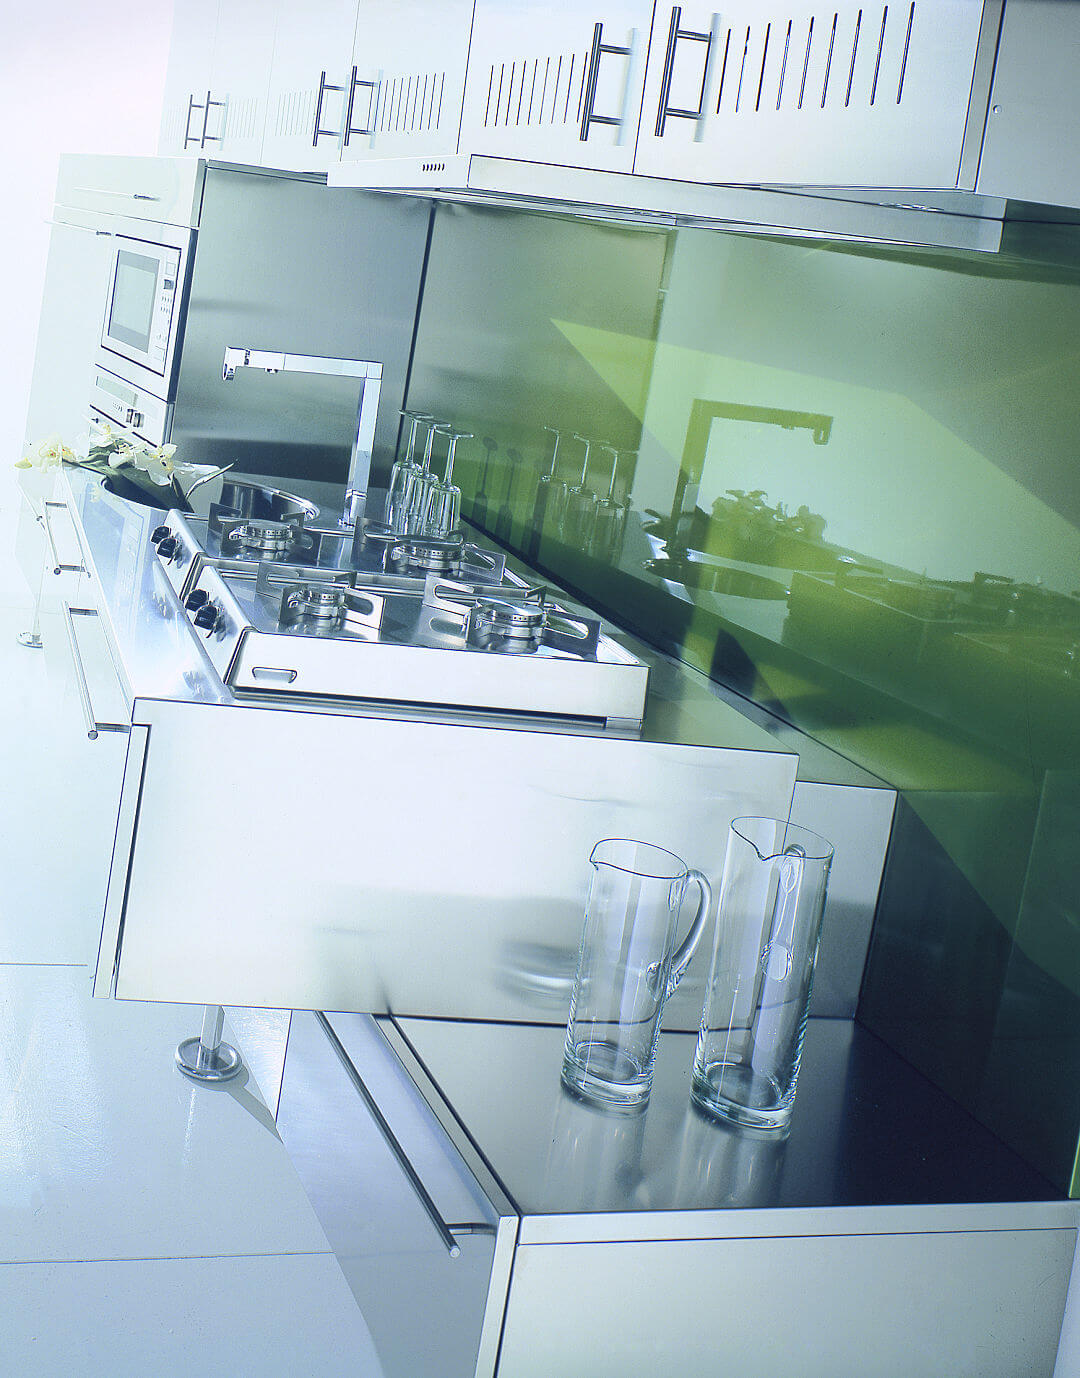 Arca Cucine Italy - Kitchen Stainless Steel Customized - hob